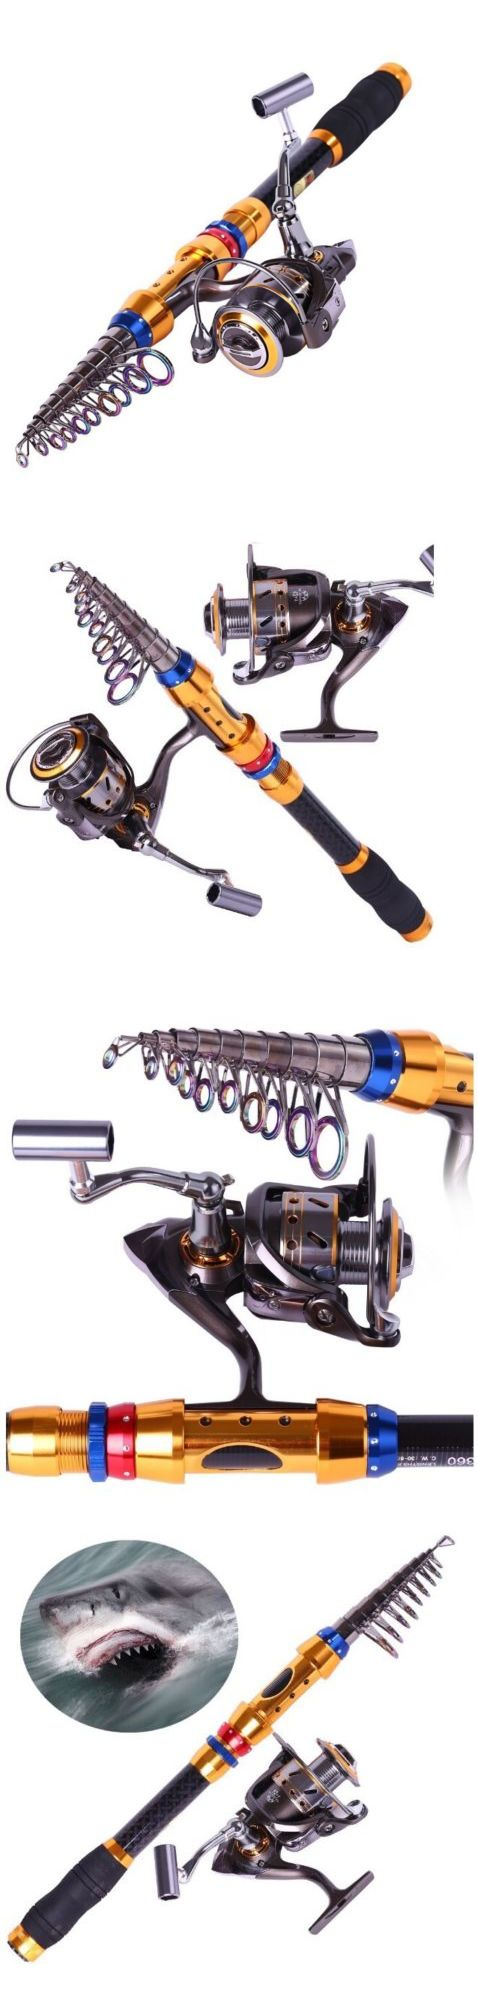 Saltwater Combos 179959: Sougayilang Portable Telescopic Fishing Rod And Reel Combos Tra... Free Shipping -> BUY IT NOW ONLY: $38.99 on eBay!